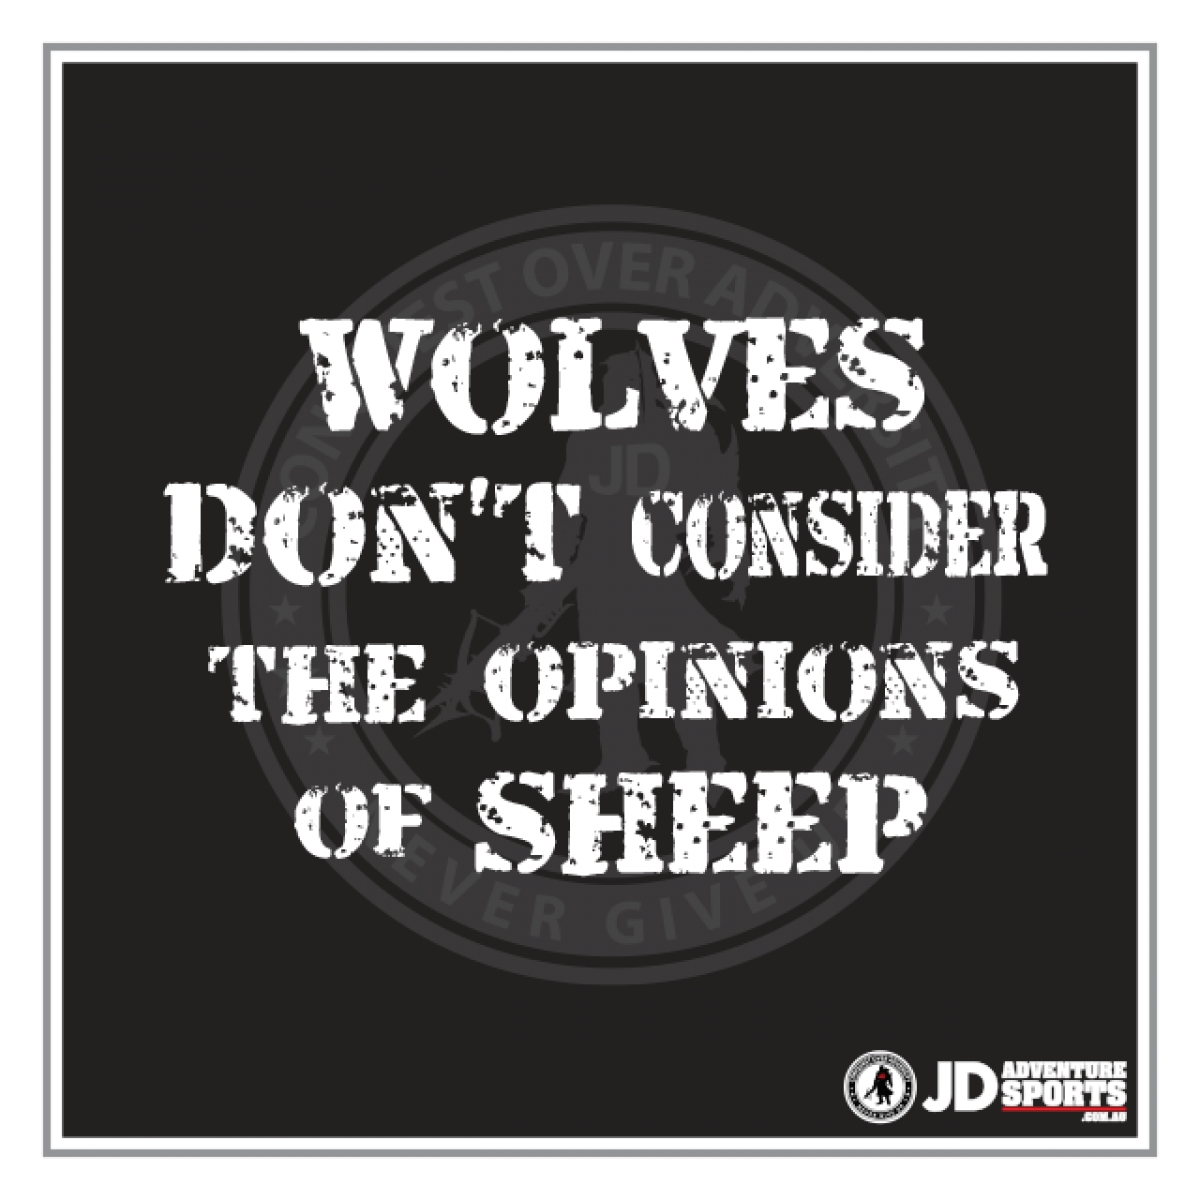 JD Adventure Sports - Shirt Graphic (Wolves)